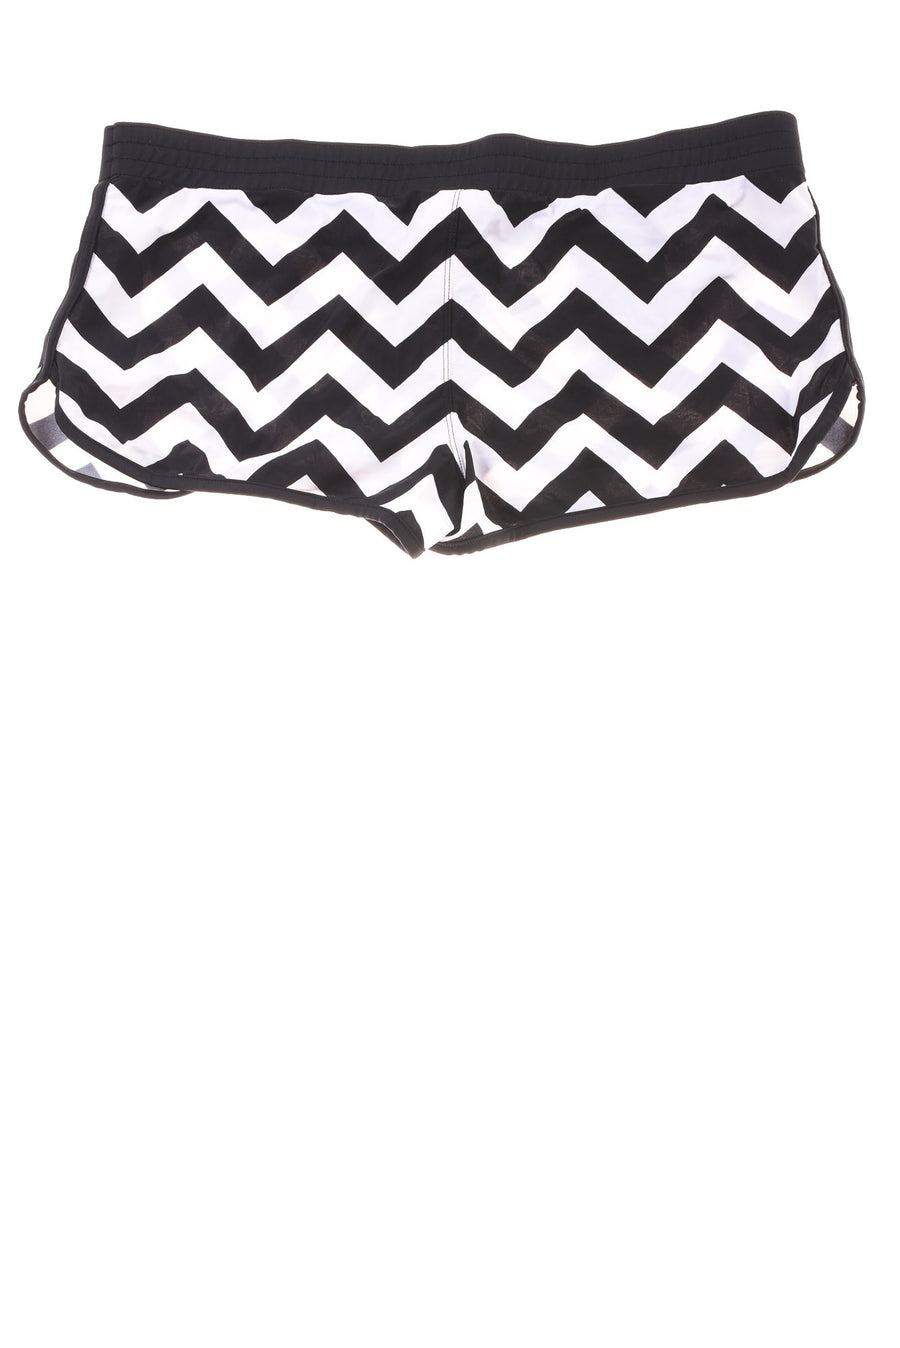 NEW Roxy Women's Swim Shorts Large Black & White